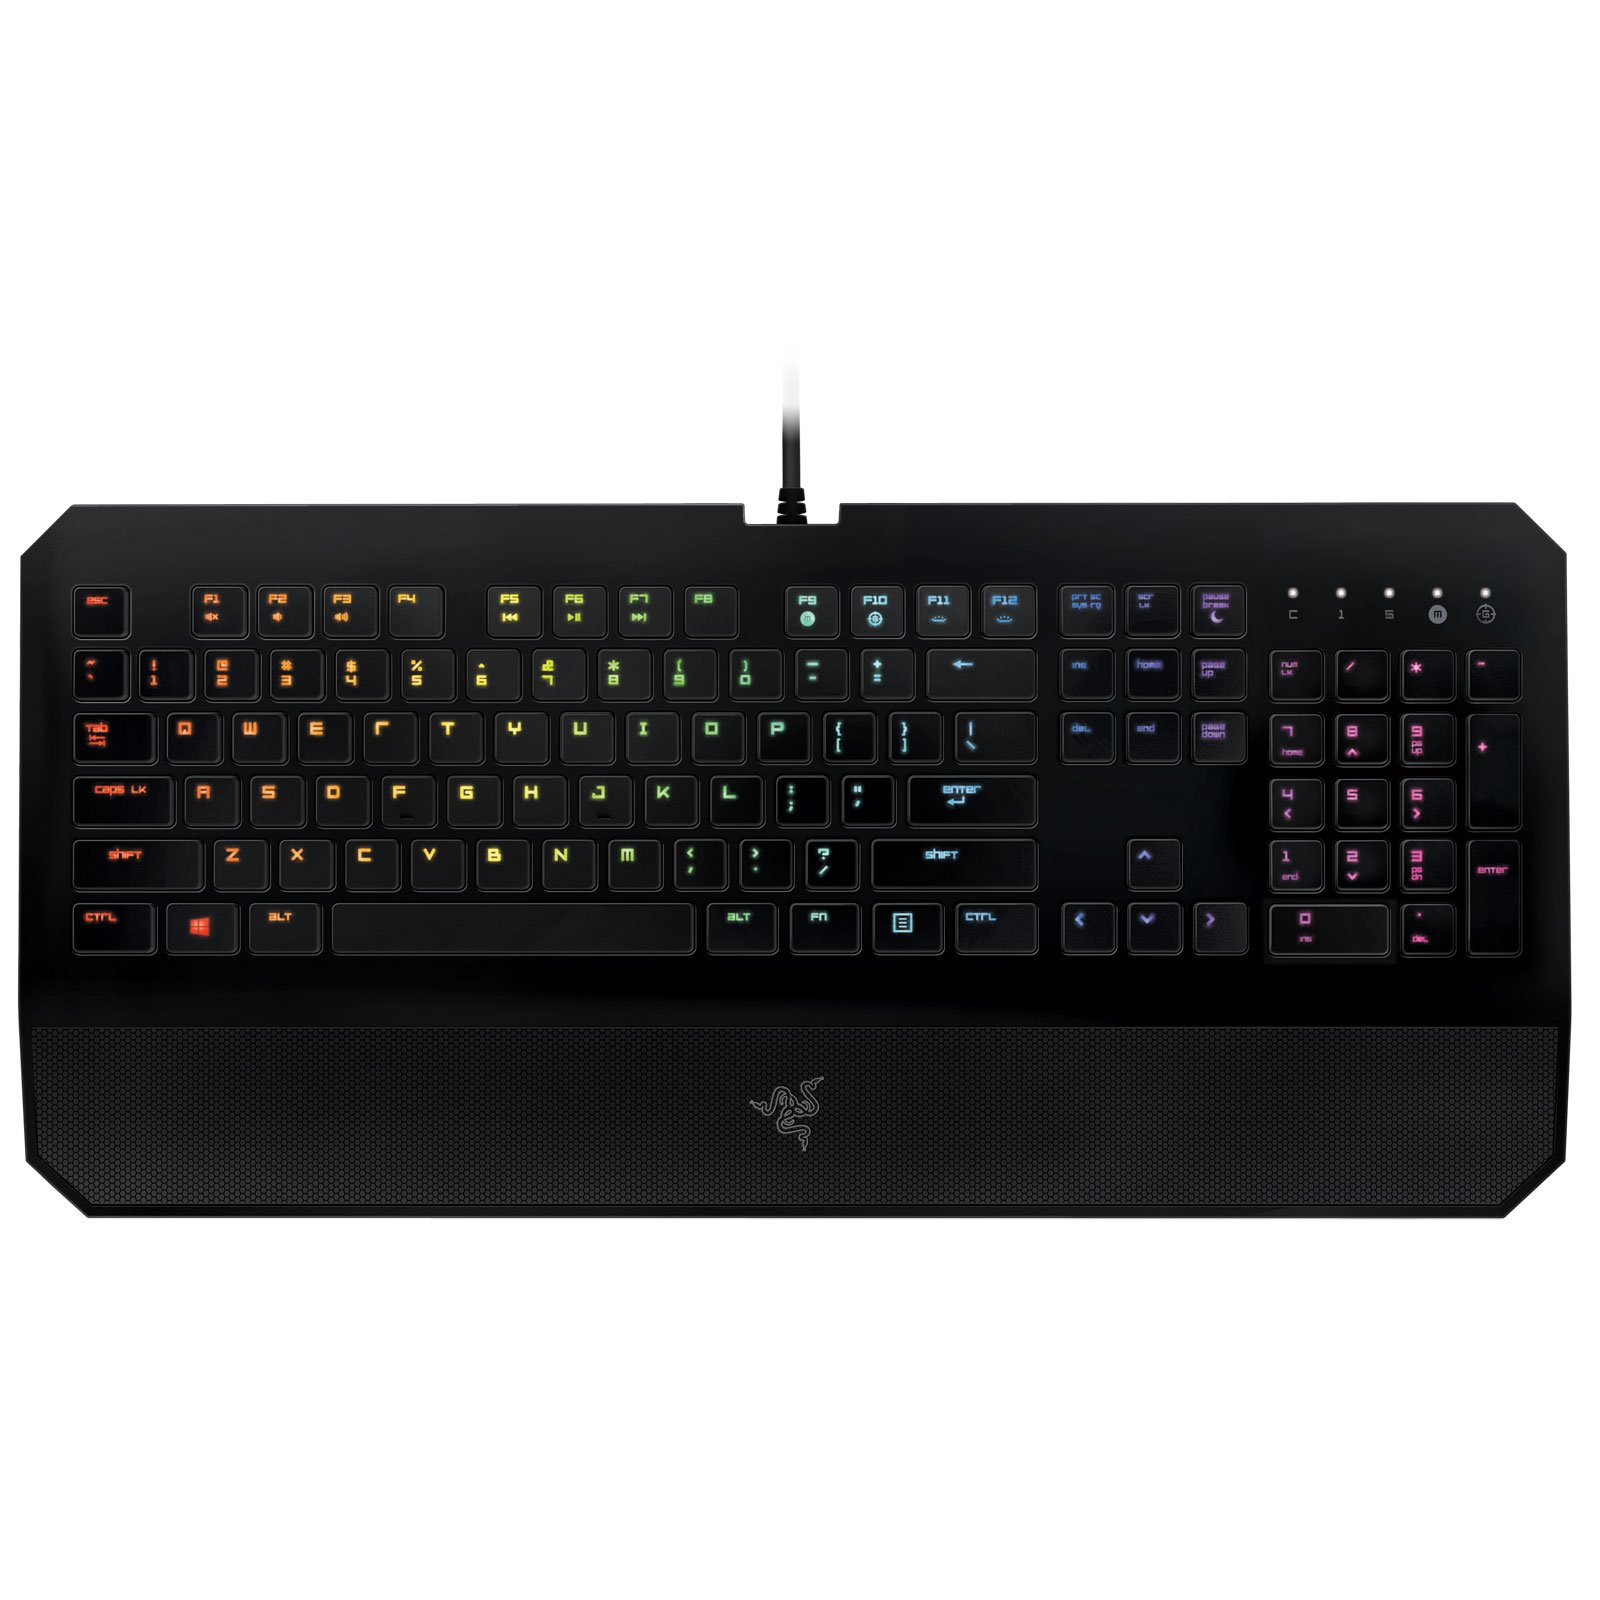 Razer DeathStalker Chroma - Clavier PC Gamer  - 1